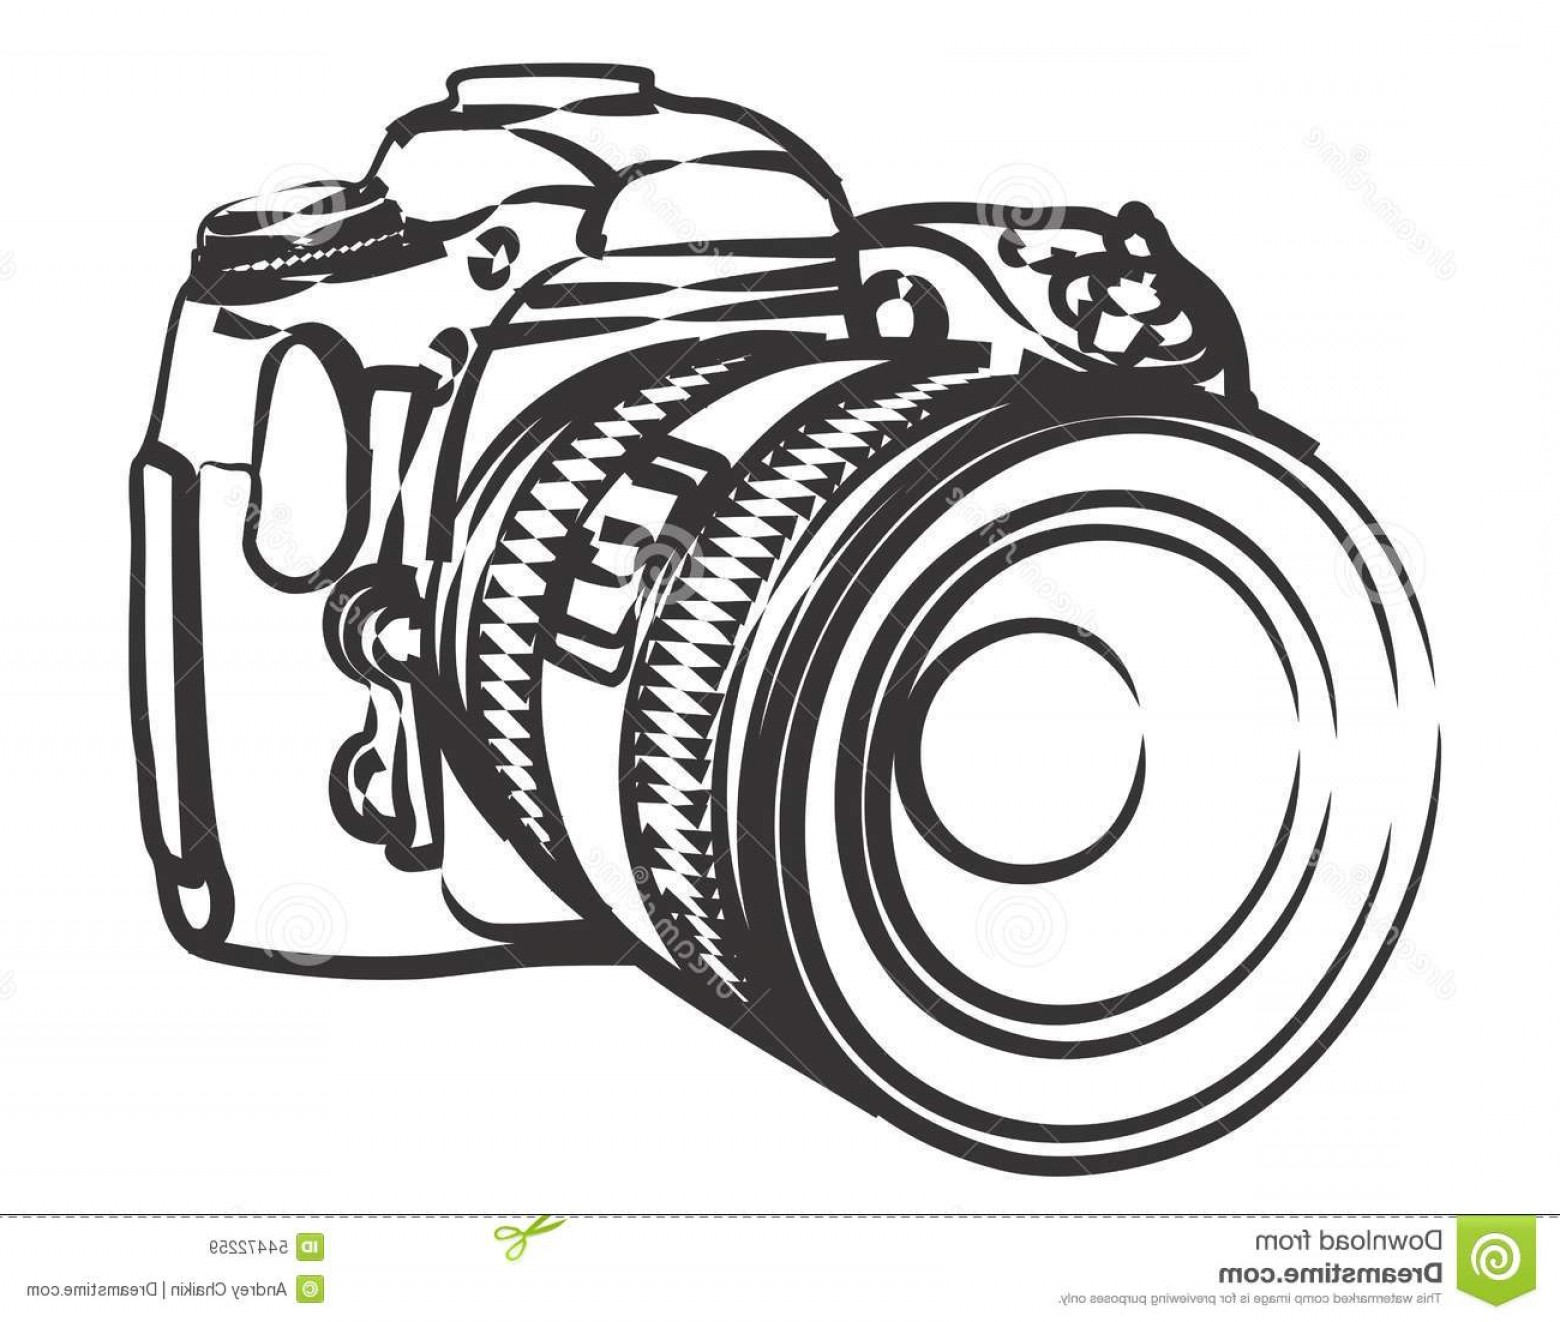 SLR Camera Vector: Stock Illustration Professional Camera Sketch Image